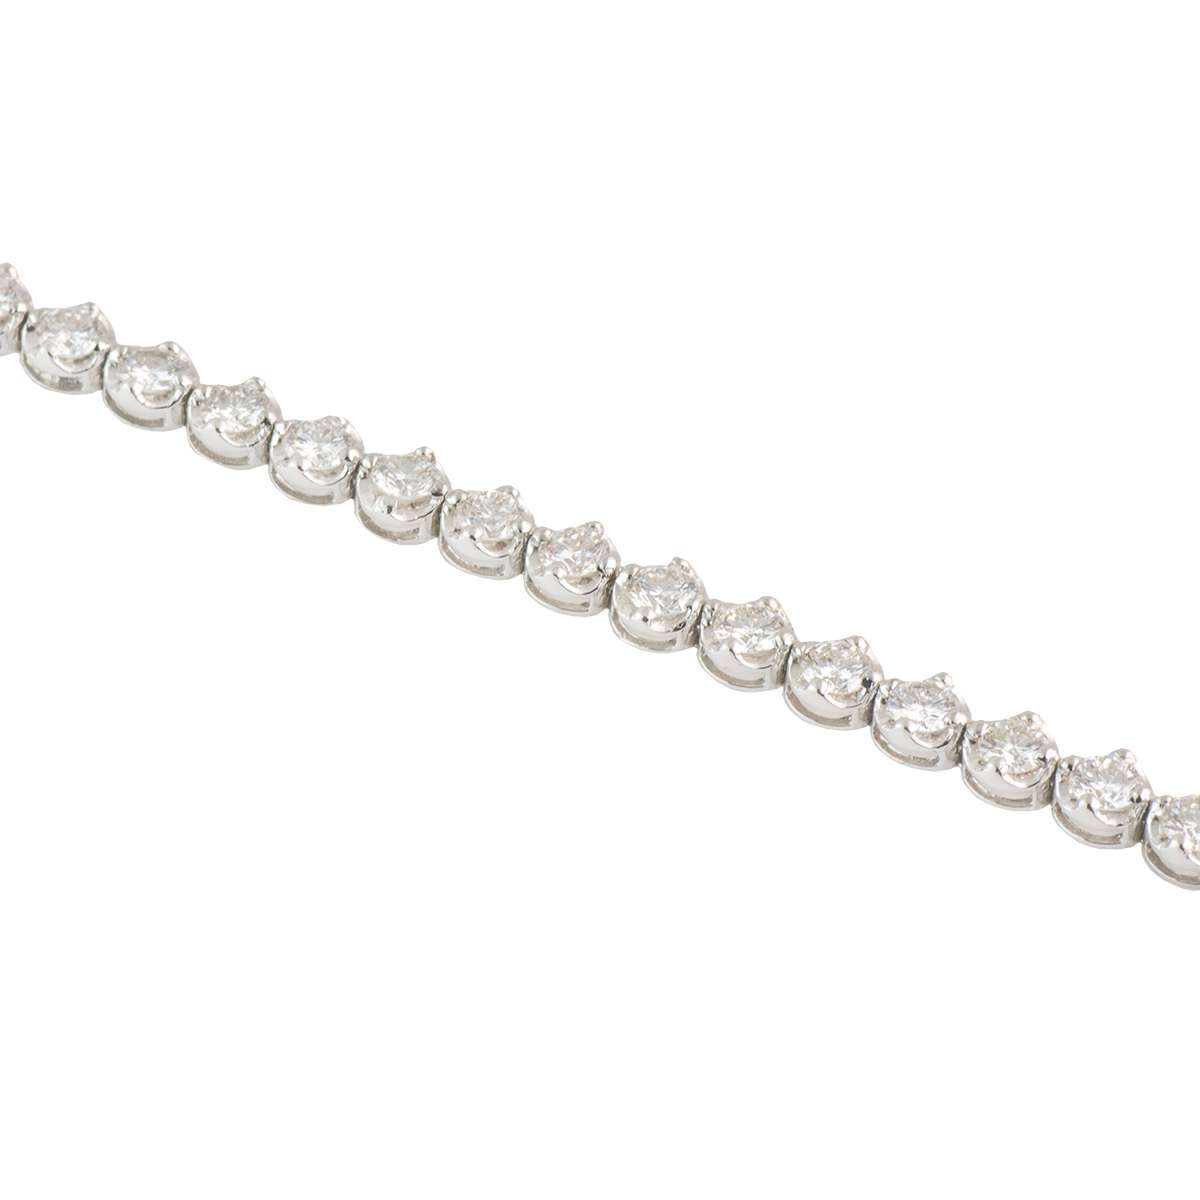 White Gold Diamond Line Bracelet 3.73ct G-H/VS1